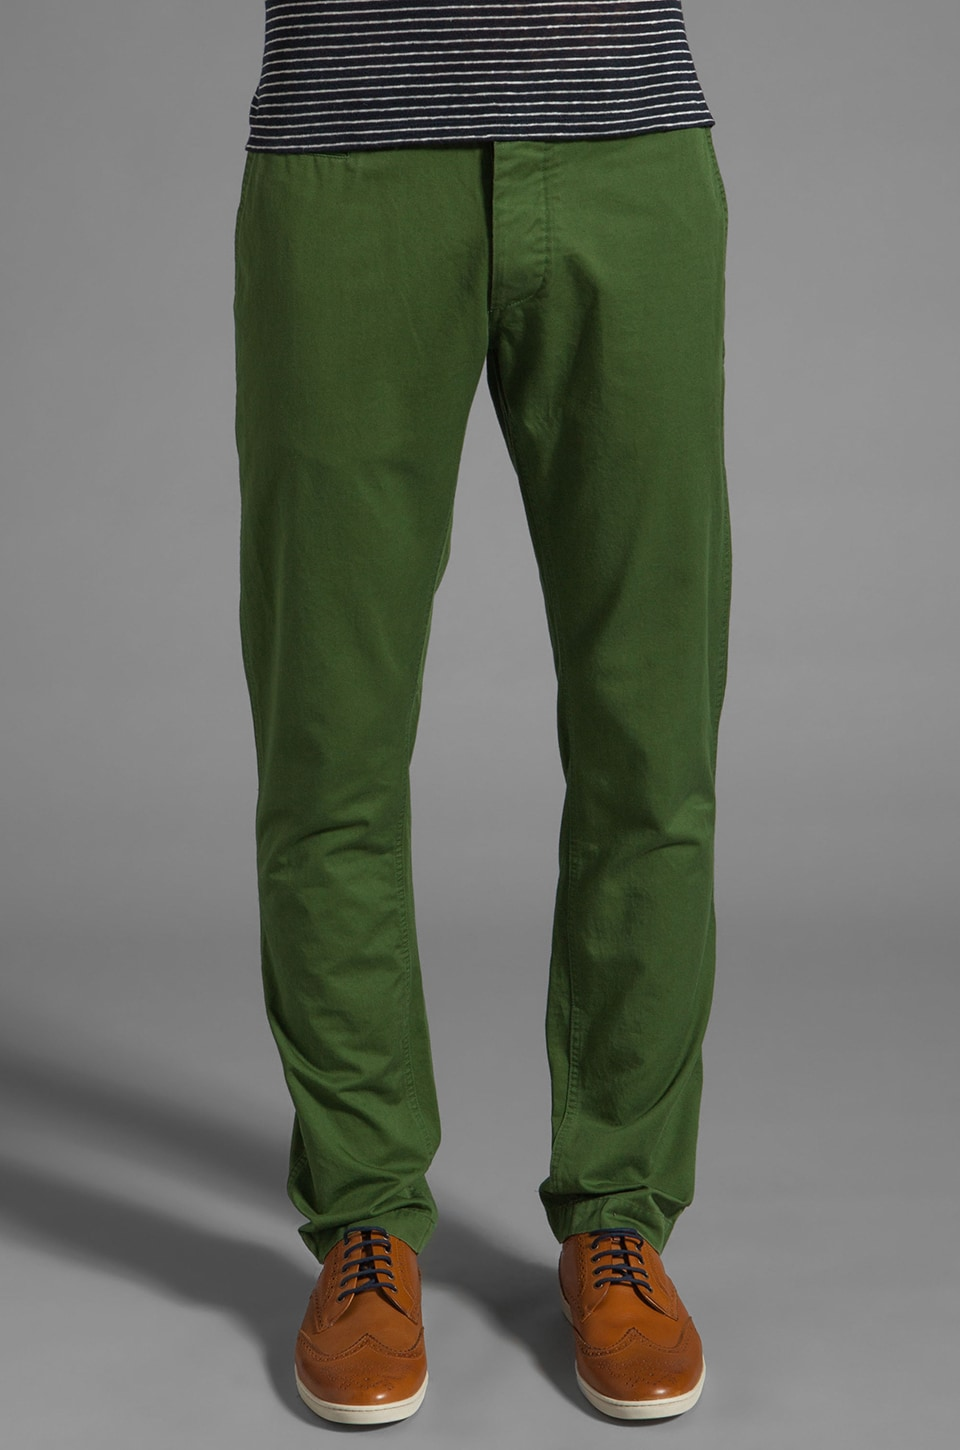 Shades of Grey by Micah Cohen Slim Fit Chino en Grass Green Twill